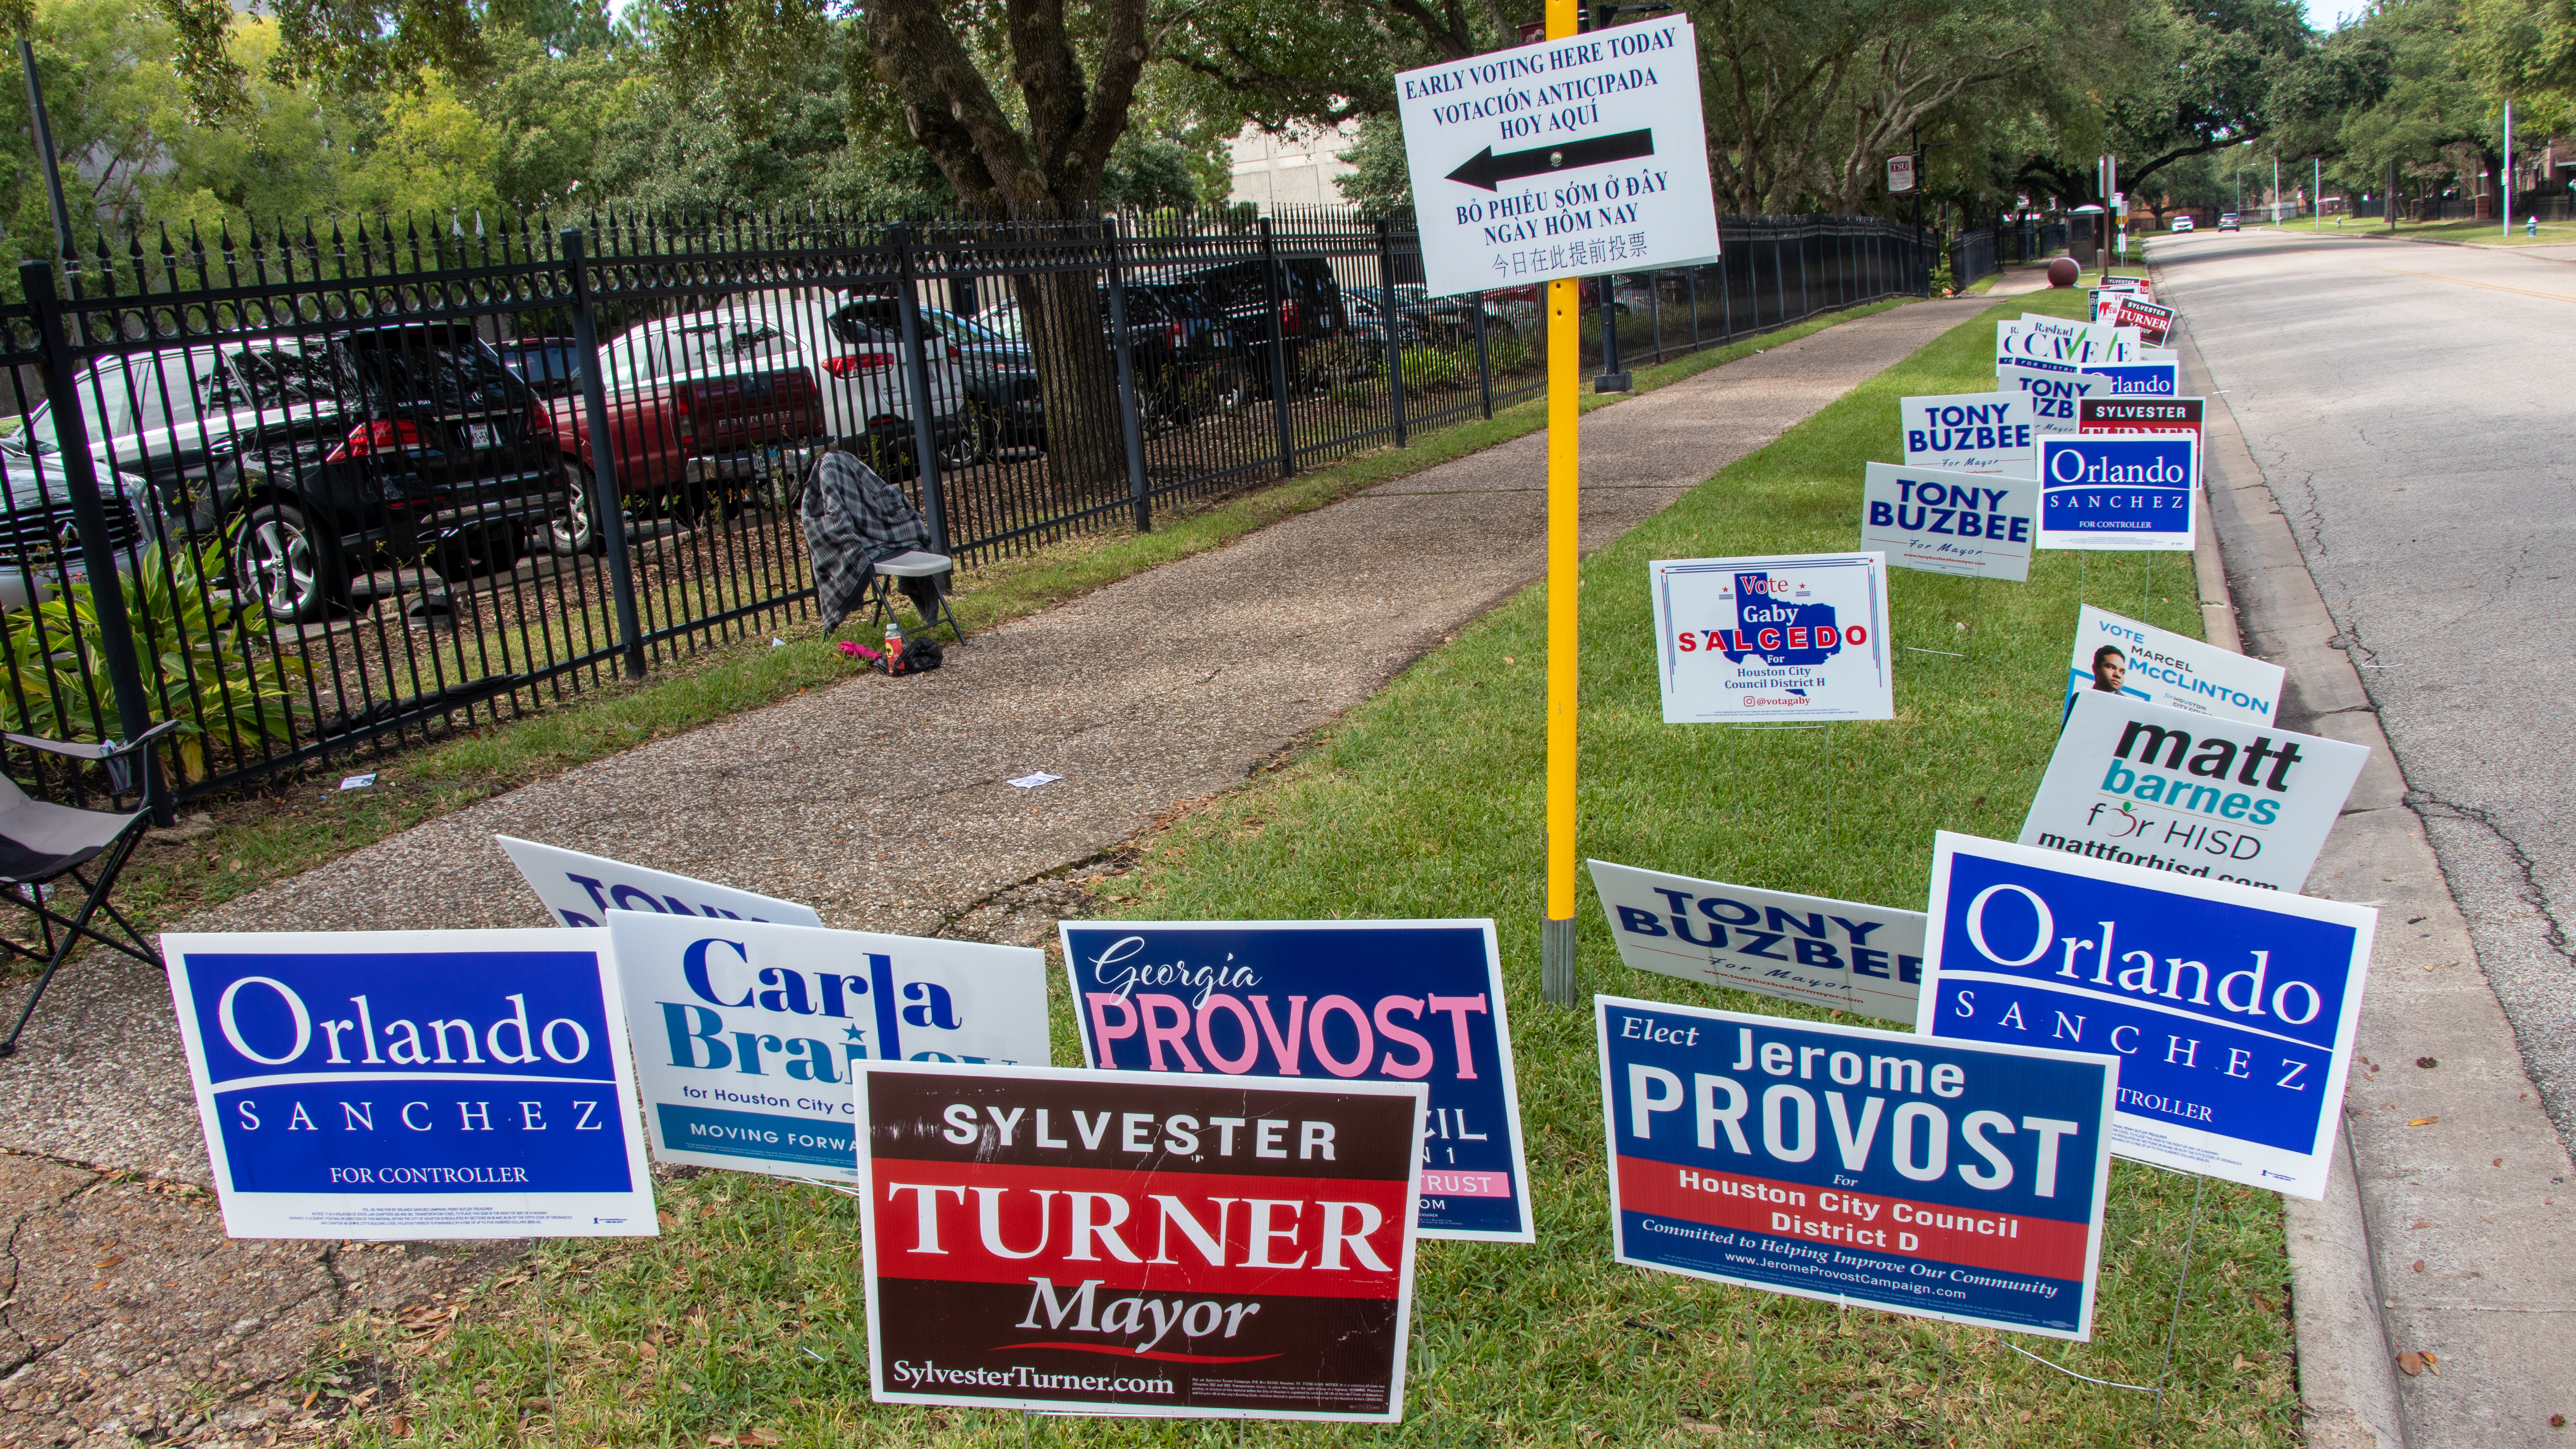 Texas Southern University is a new addition to early voting locations.